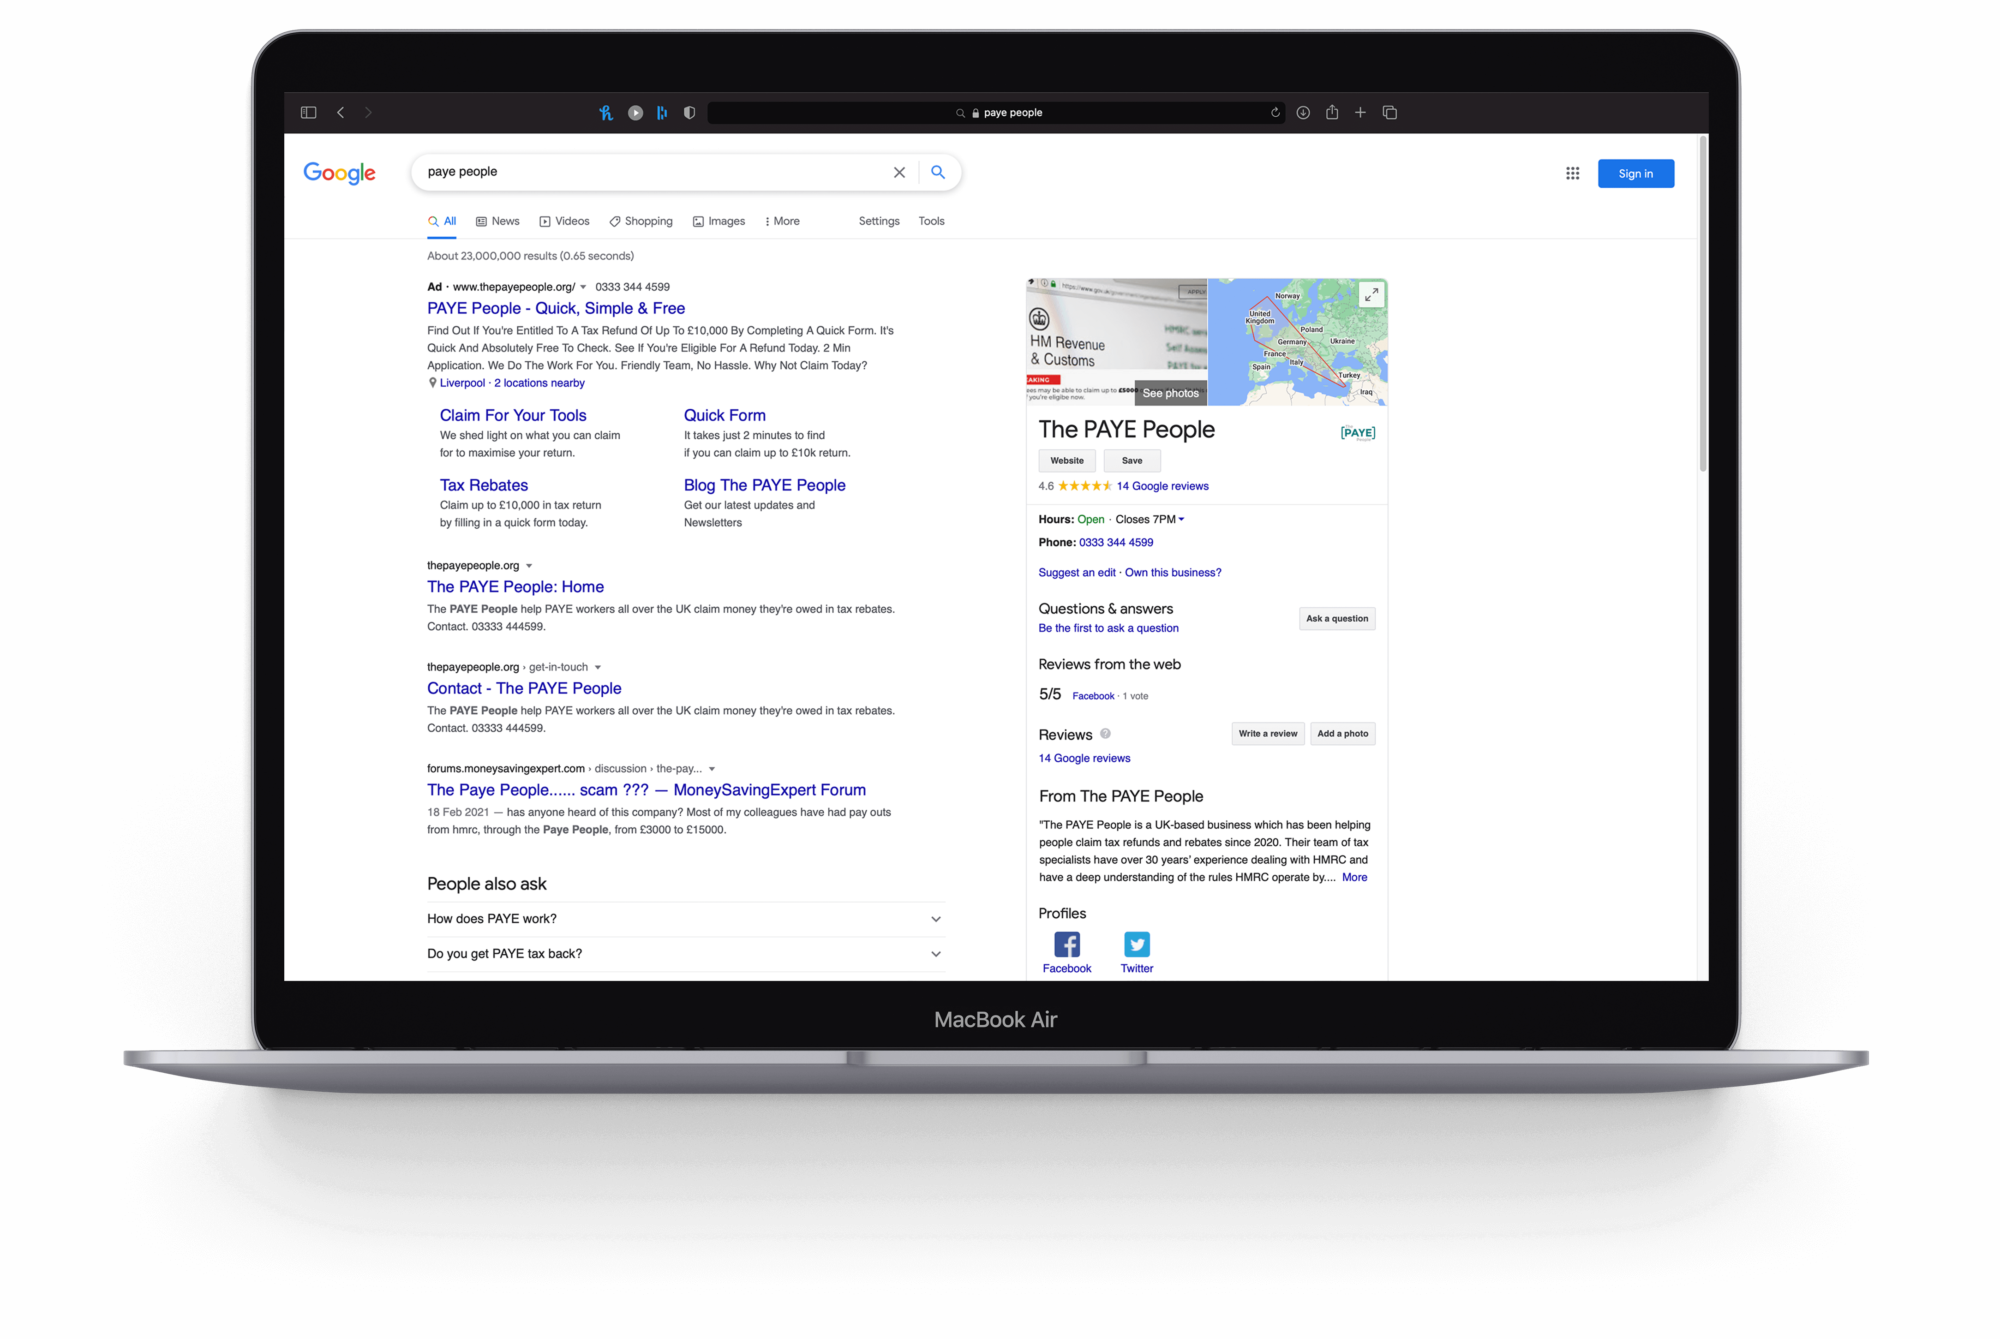 A Macbook Air with a screenshot of a Google search for the paye people. From the search, the PAYE people website is shown along with a Google Ad campaign that's seen at the top of the search results.